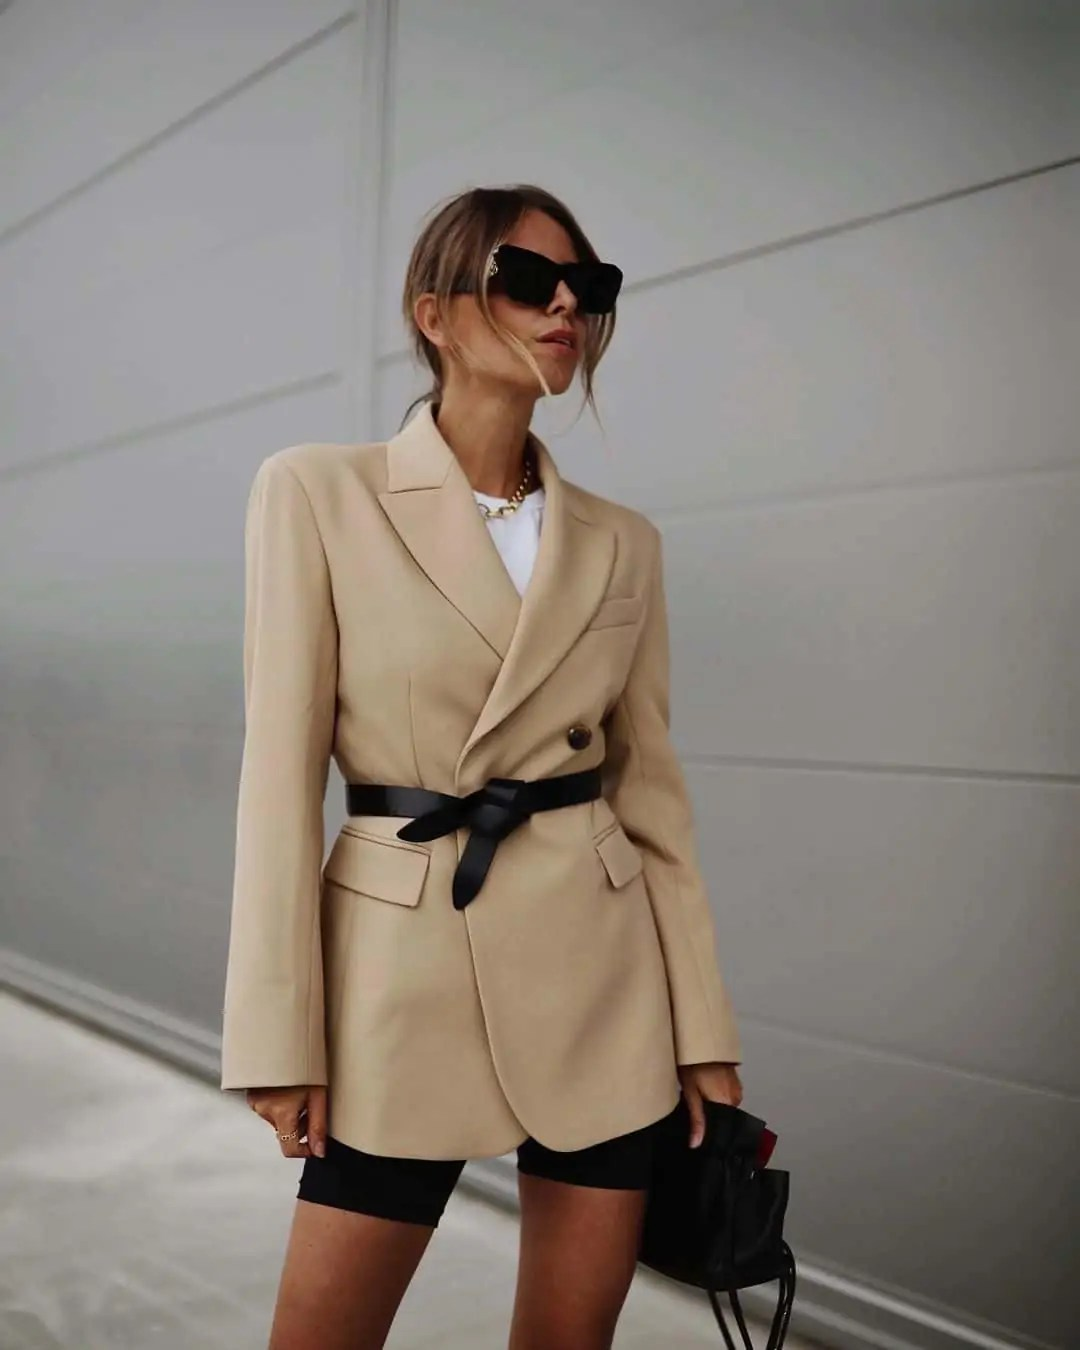 Minimal Outfit Ideas that you must see! 5